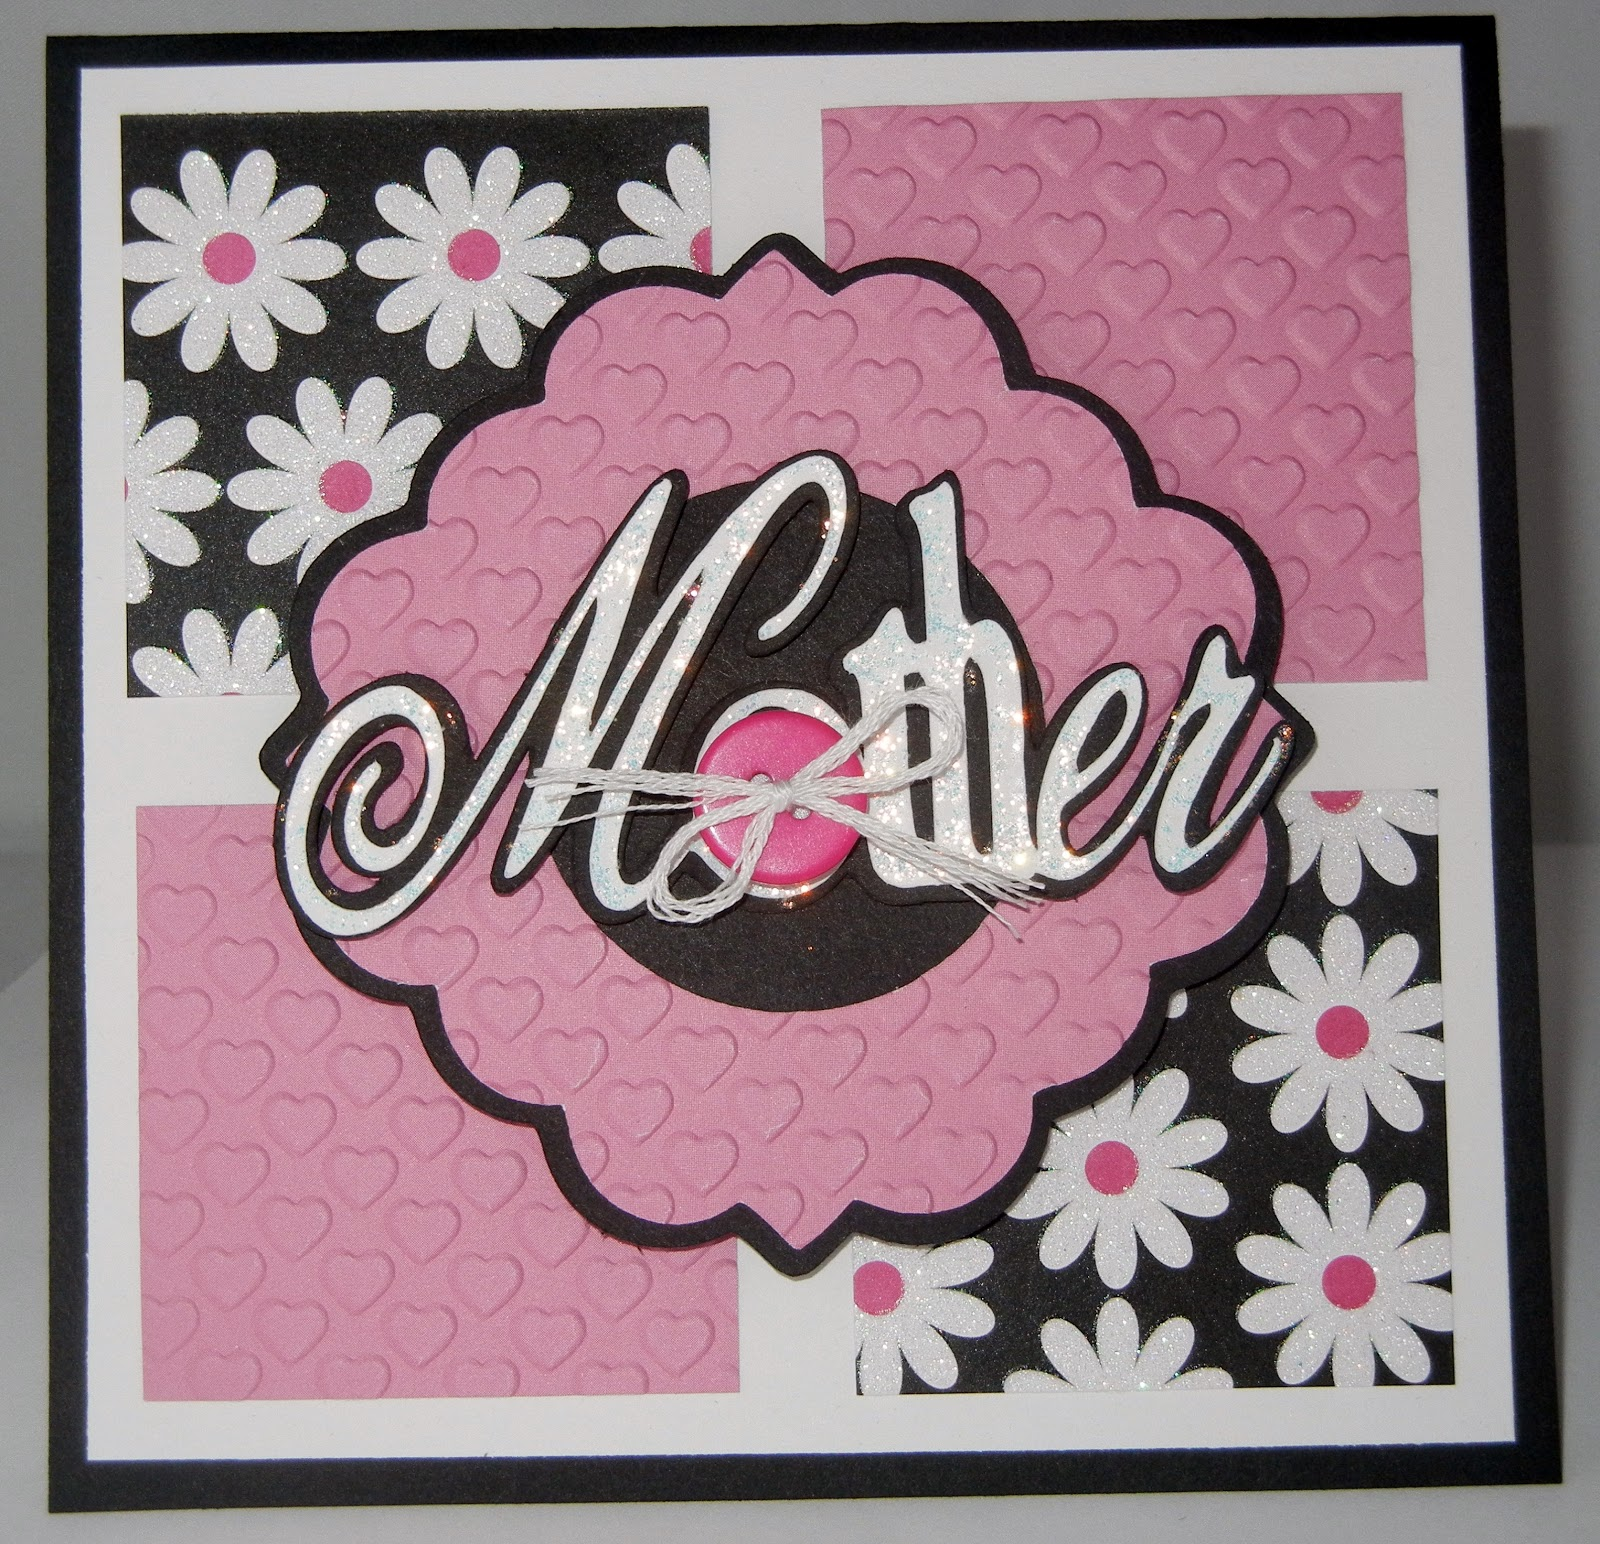 My cricut craft room card creating tuesday may 7 2013 for Classy mothers day cards